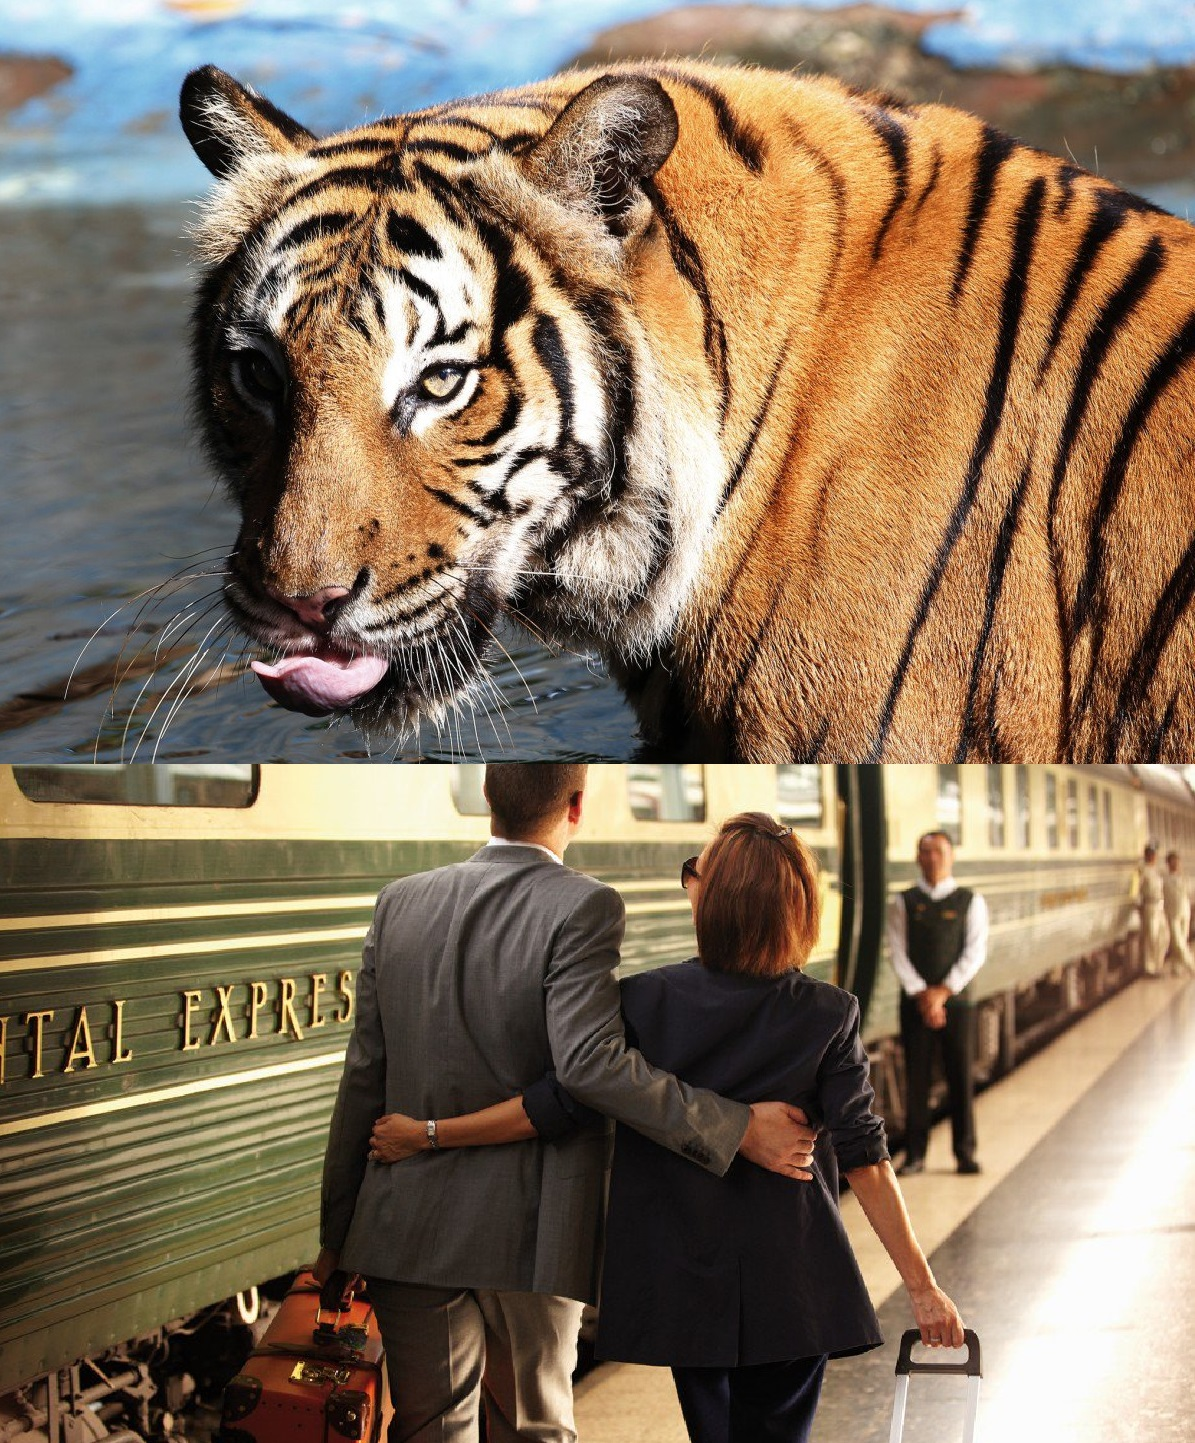 The six-day, five-night 'Tiger Express' – a special trip organised aboard Belmond's luxury train, the Eastern & Oriental Express – will pass through the tiger's traditional habitat as it travels from Bangkok to Singapore and help to raise awareness about endangered big cats.